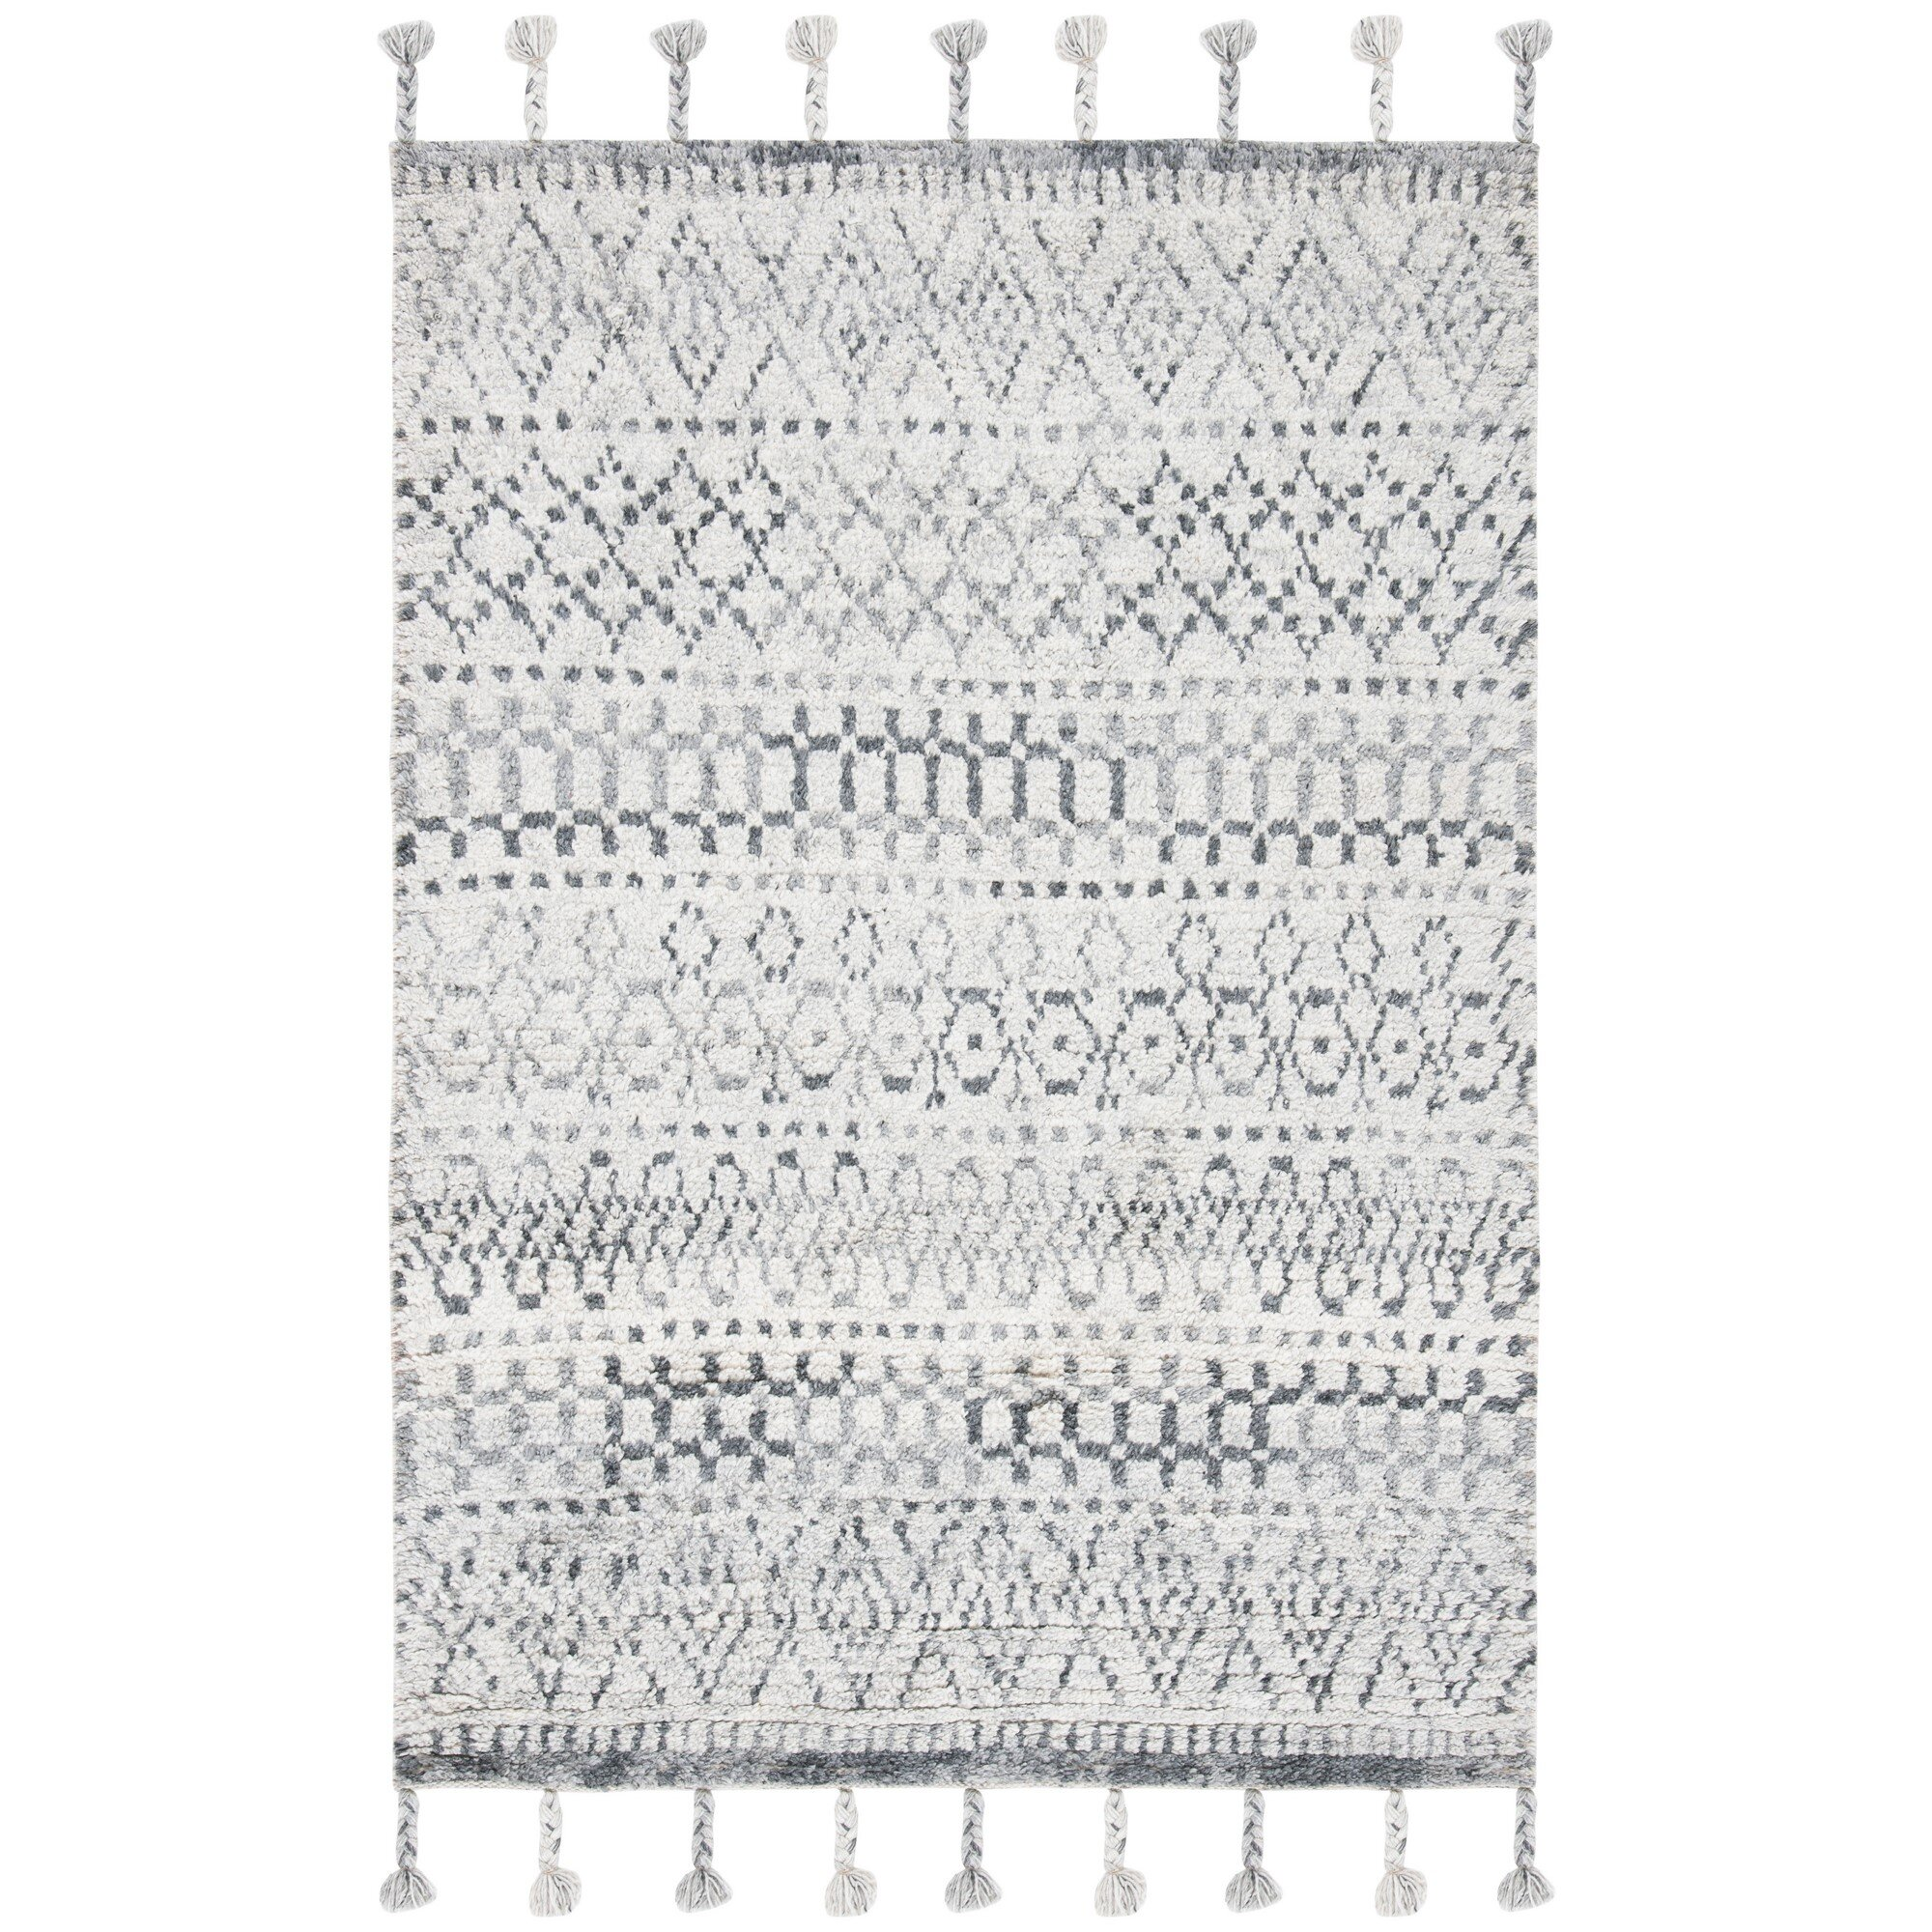 Knotted Bungalow Rose Area Rugs You Ll Love In 2021 Wayfair